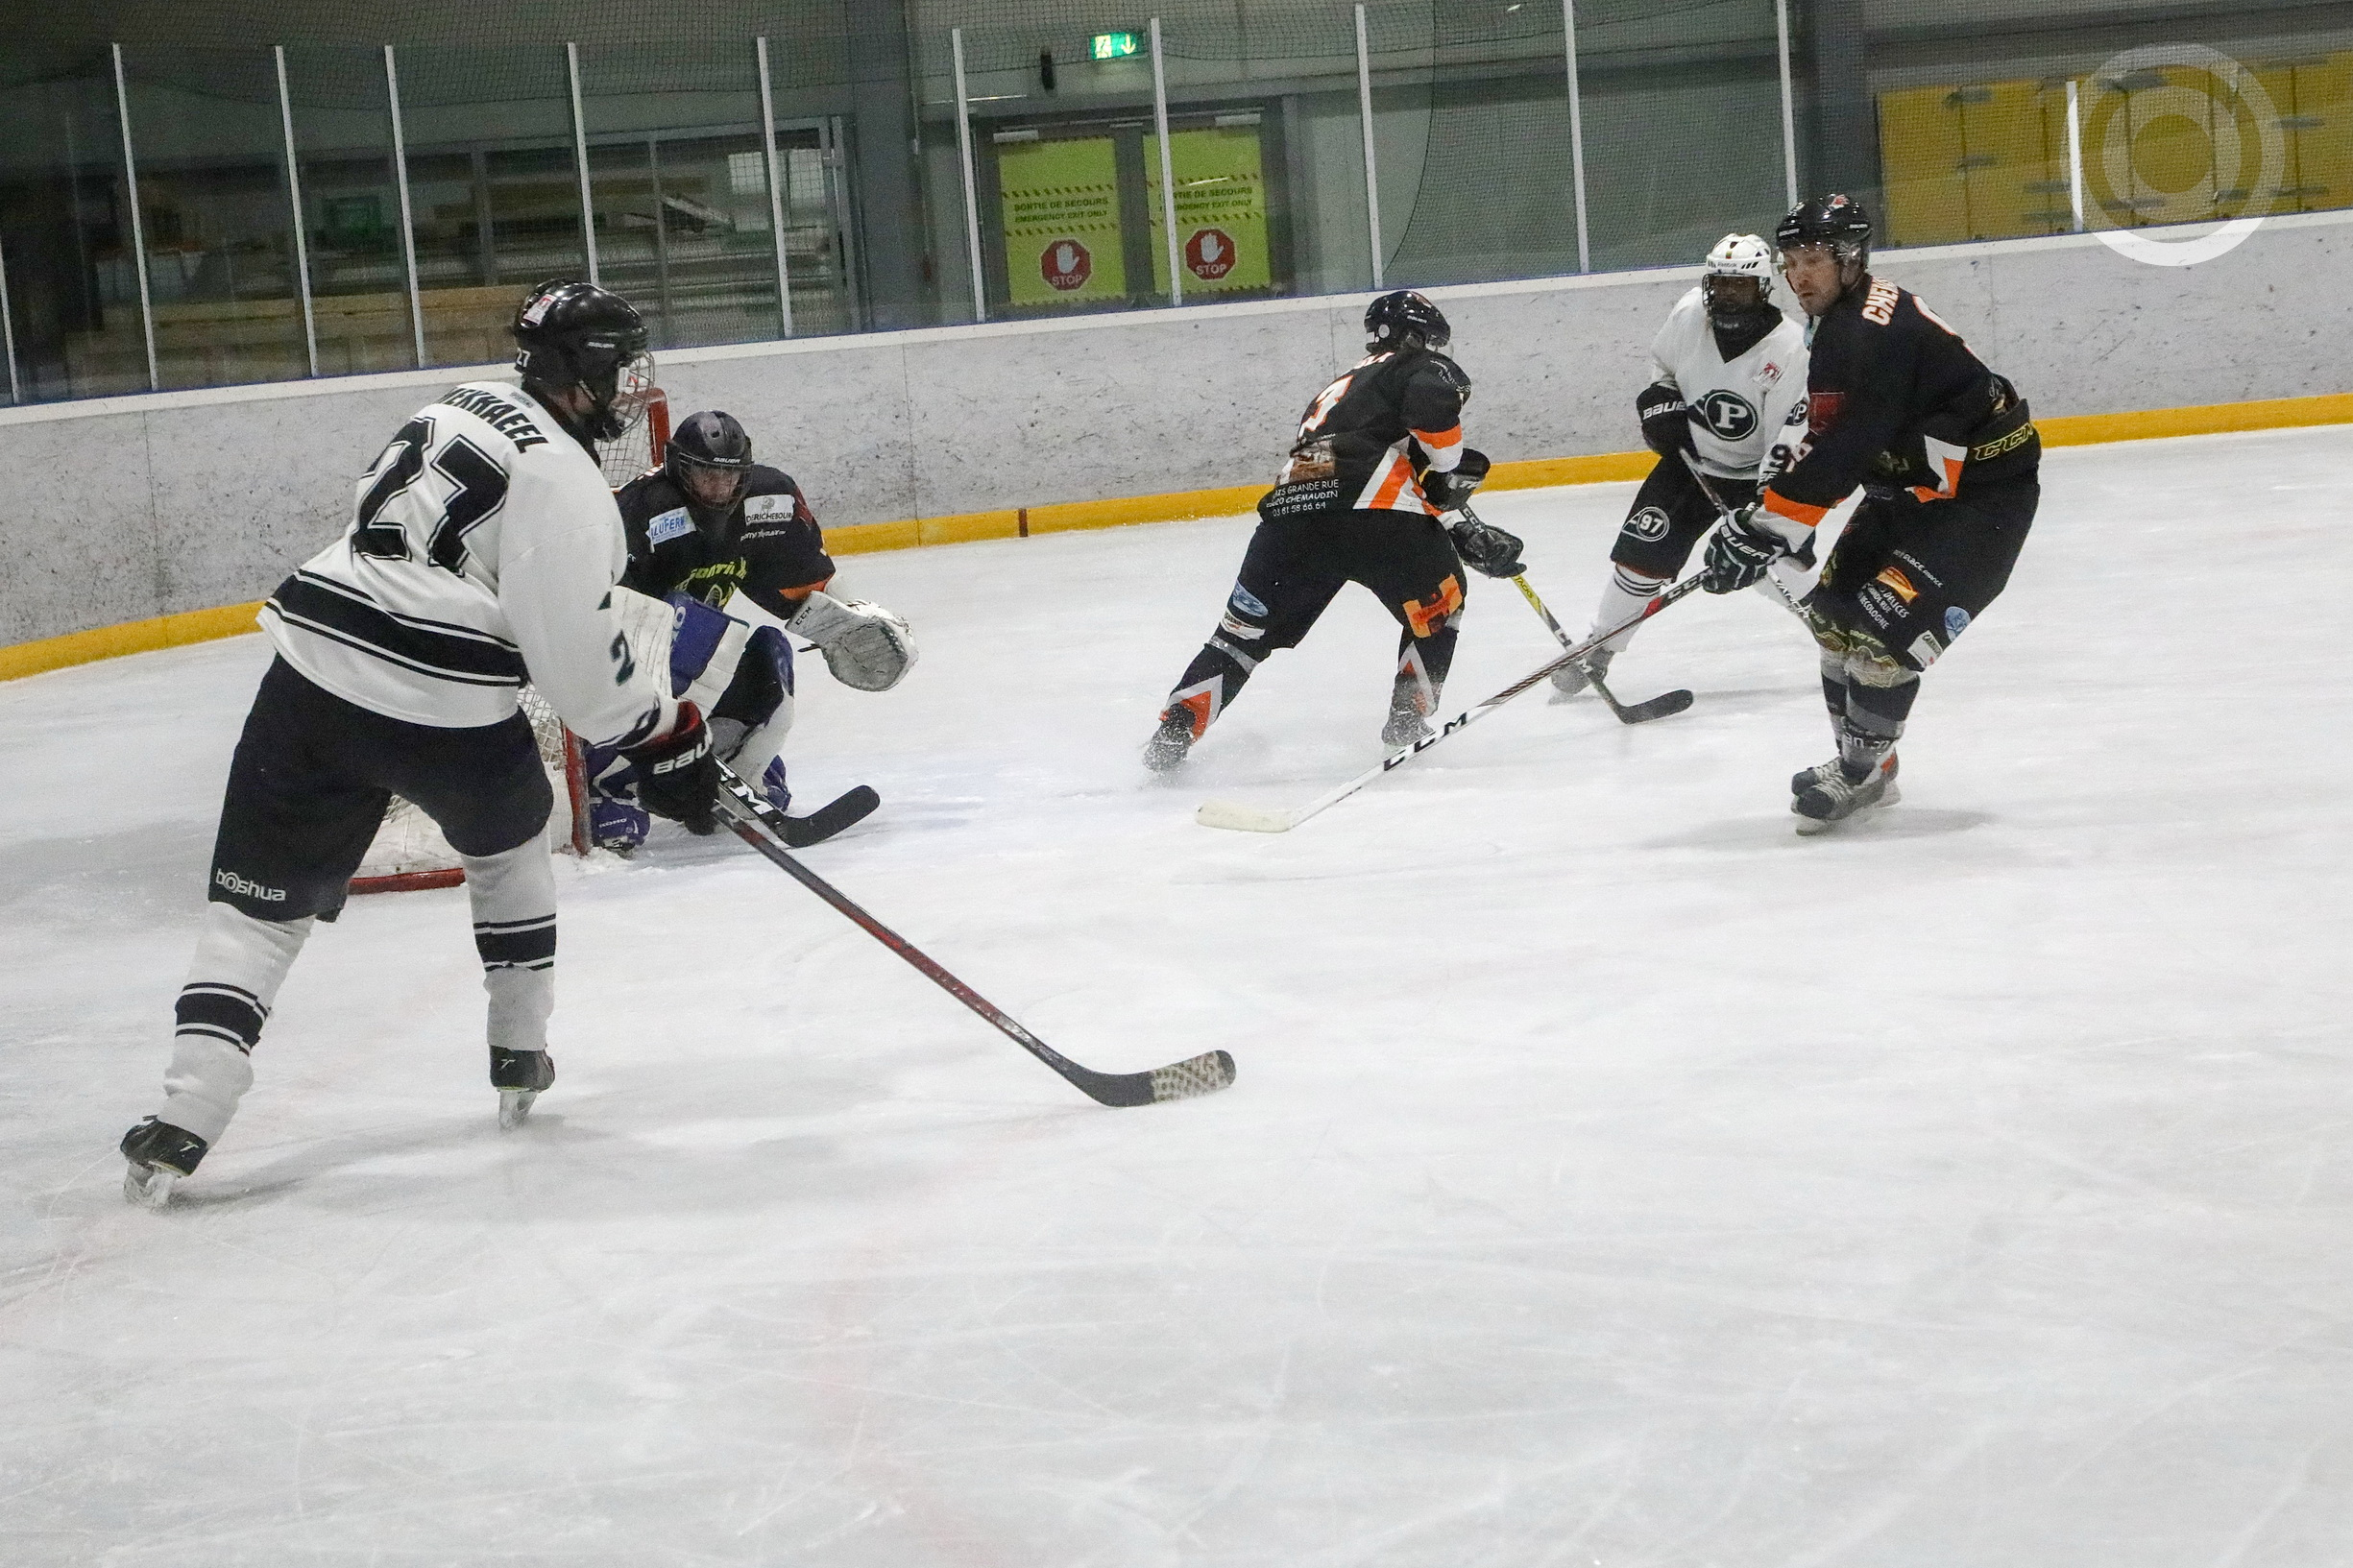 Puckers regain league lead with narrow 4-3 win over Besançon